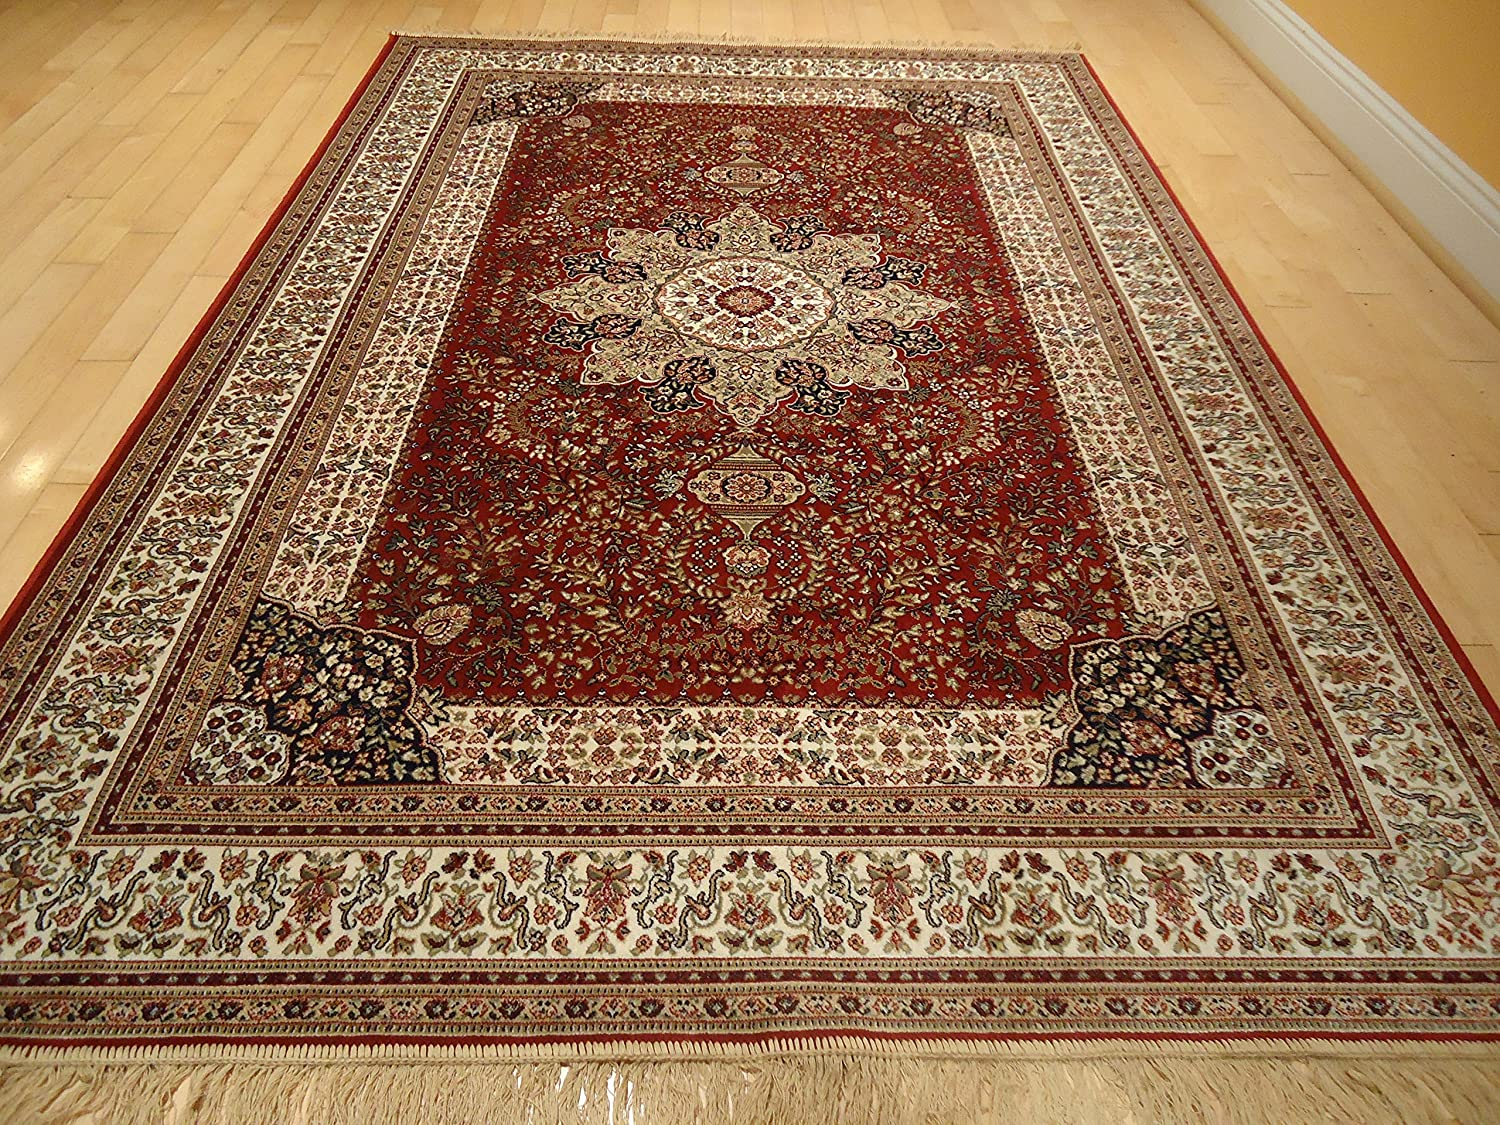 Red Rugs Red Rugs Rose Tufted Red Rug Rug Red Slovenia